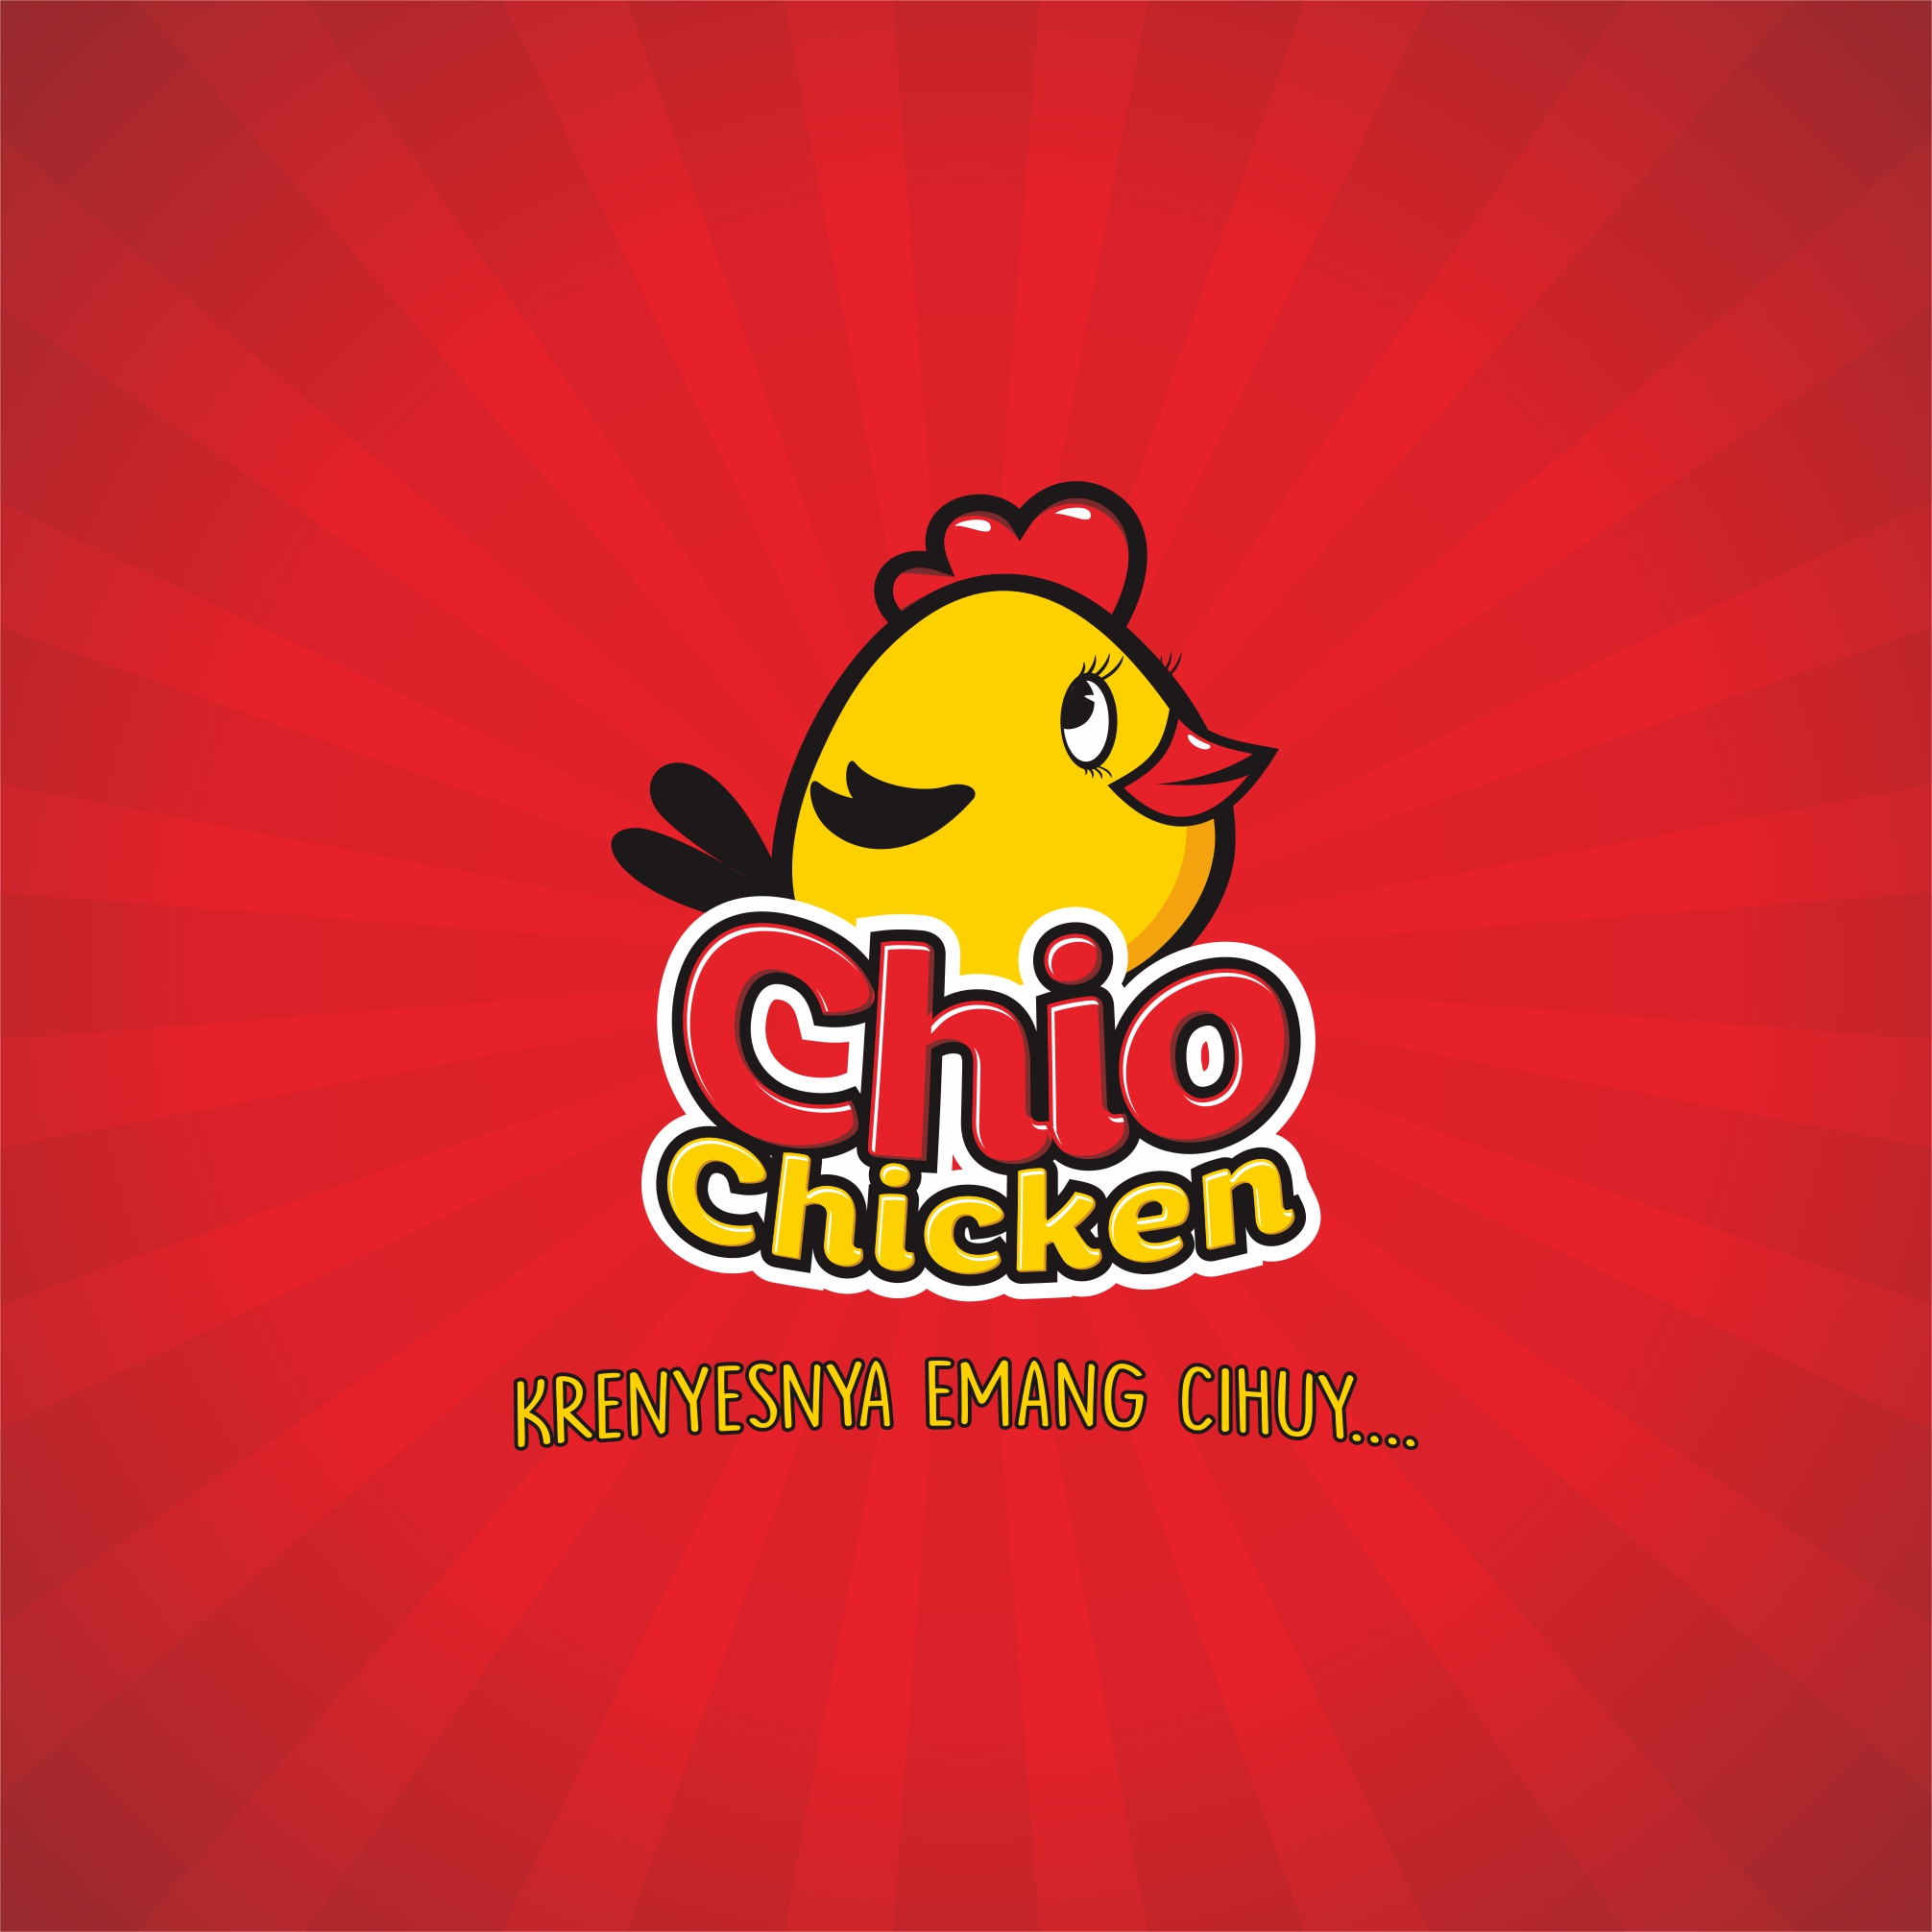 chio chicken